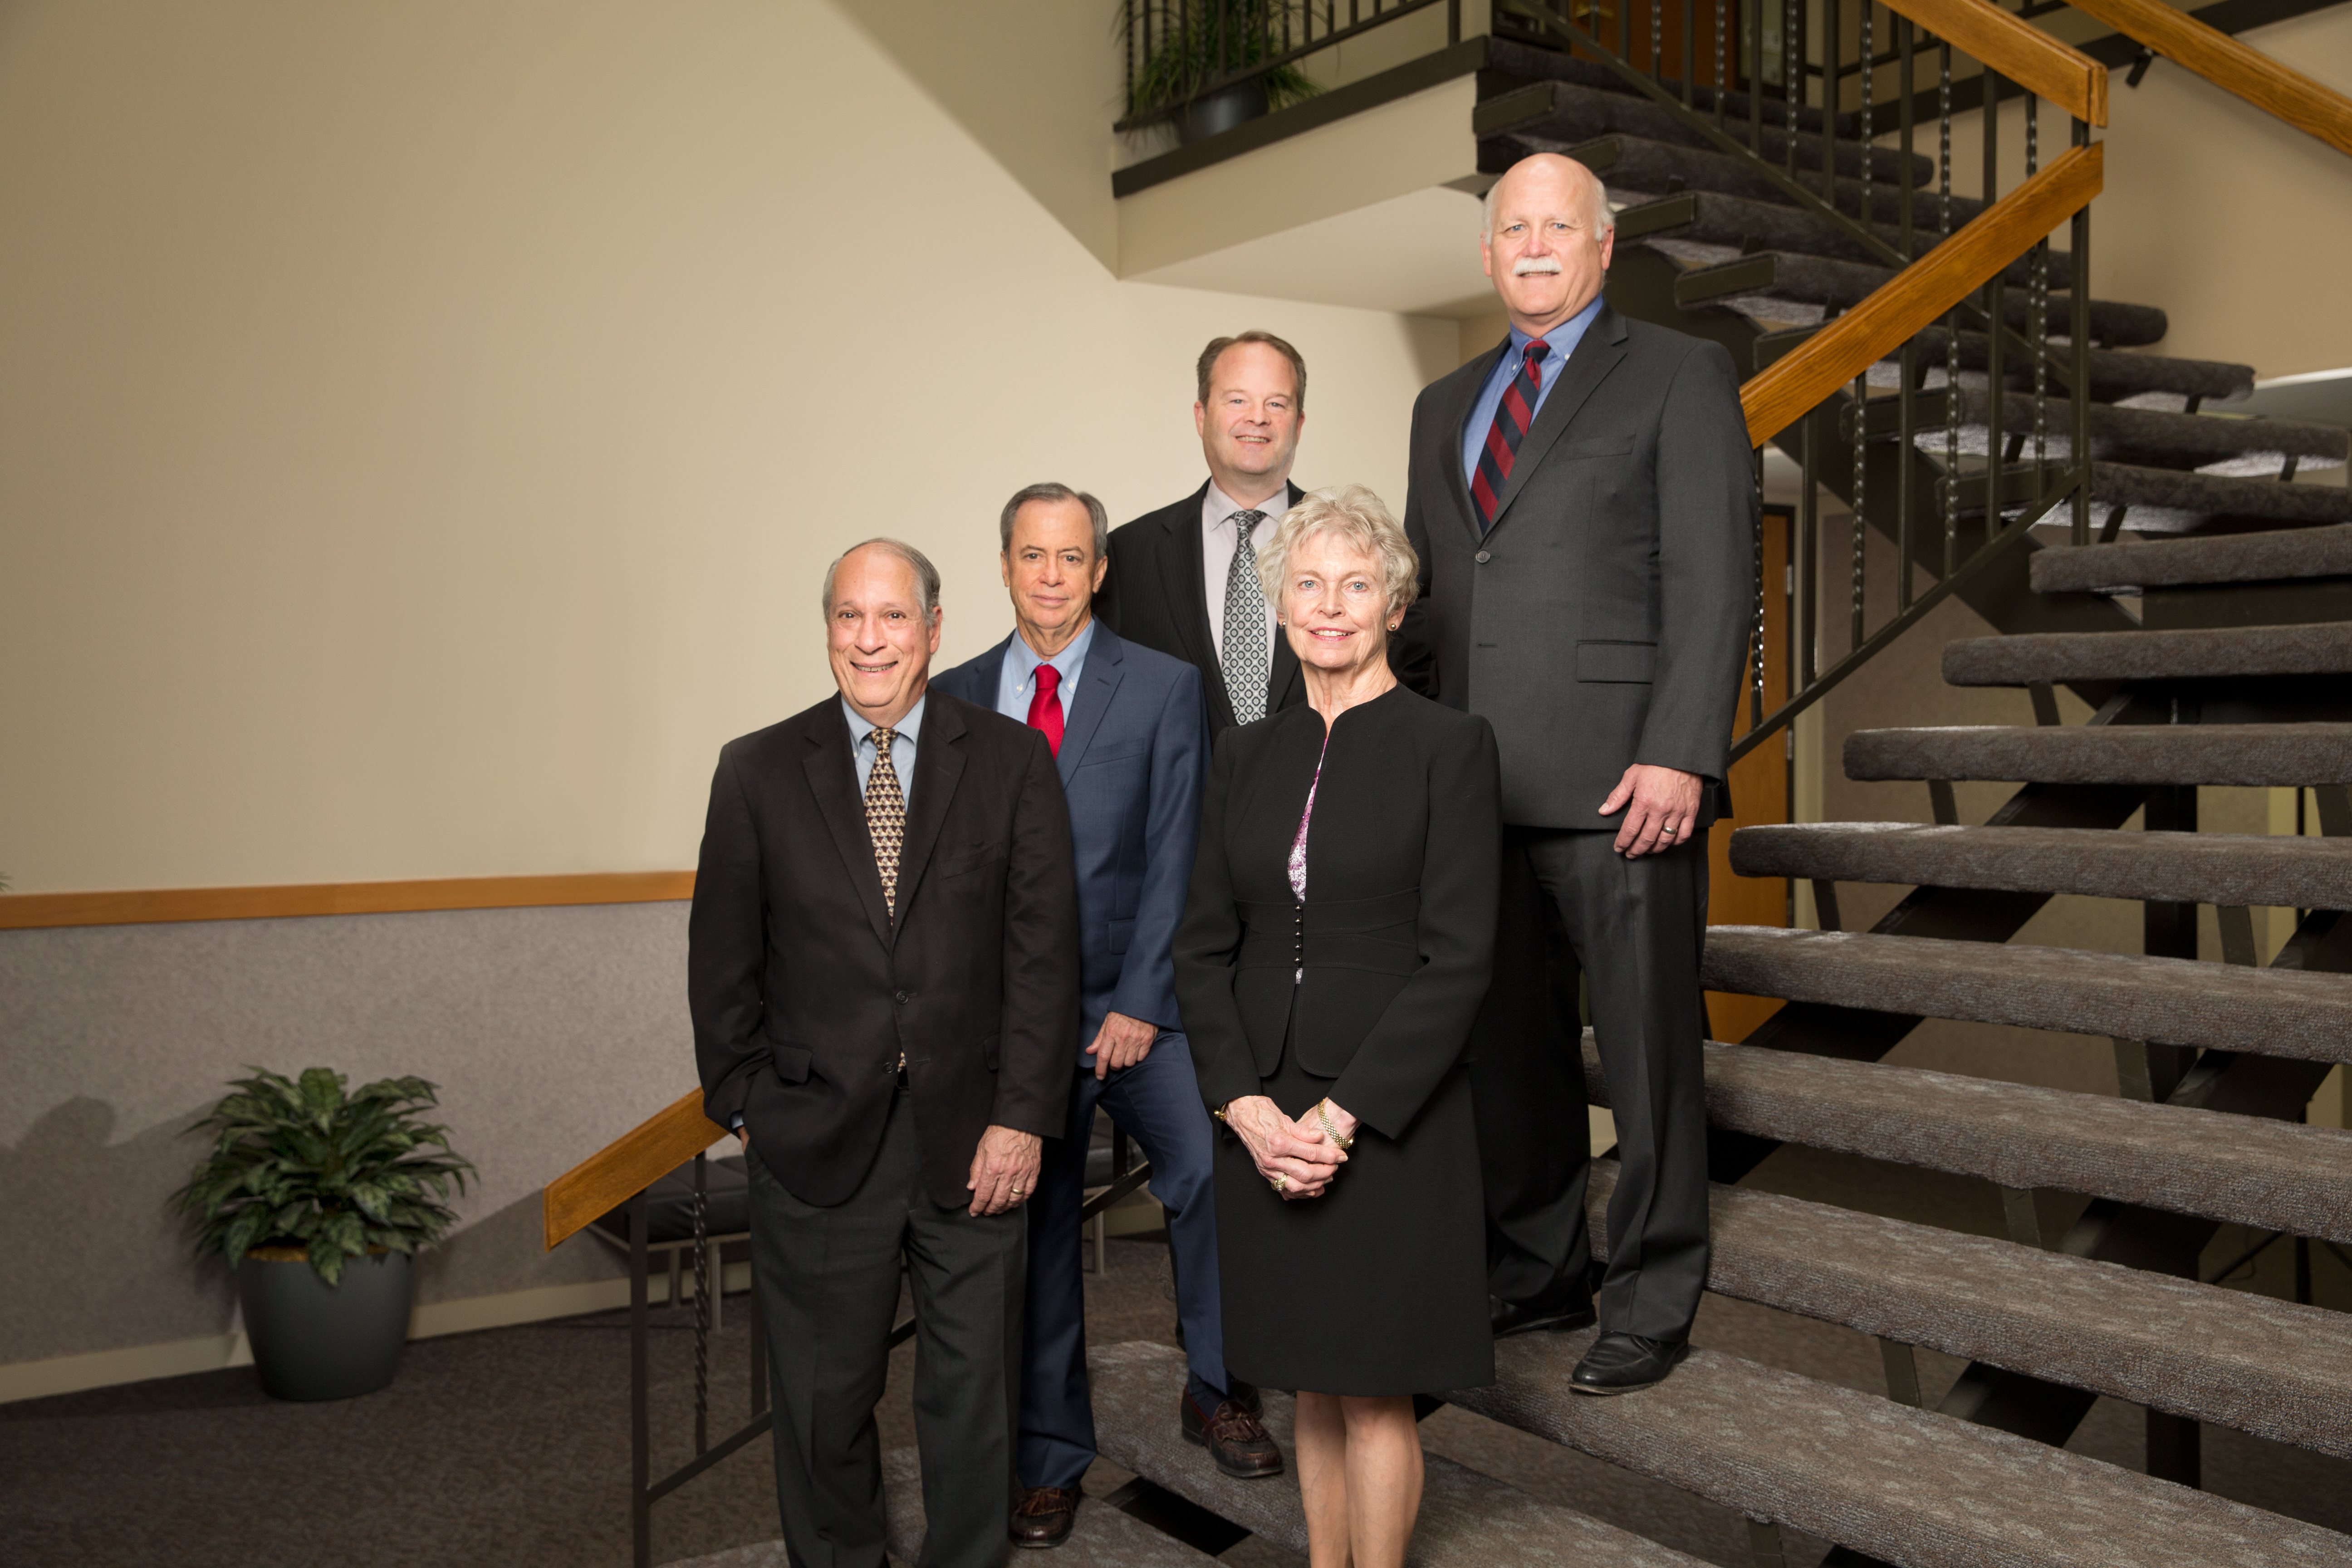 The Robert D. and Marcia H. Randall Charitable Trust donated $20 million to the planned Unity Center for Behavioral Health